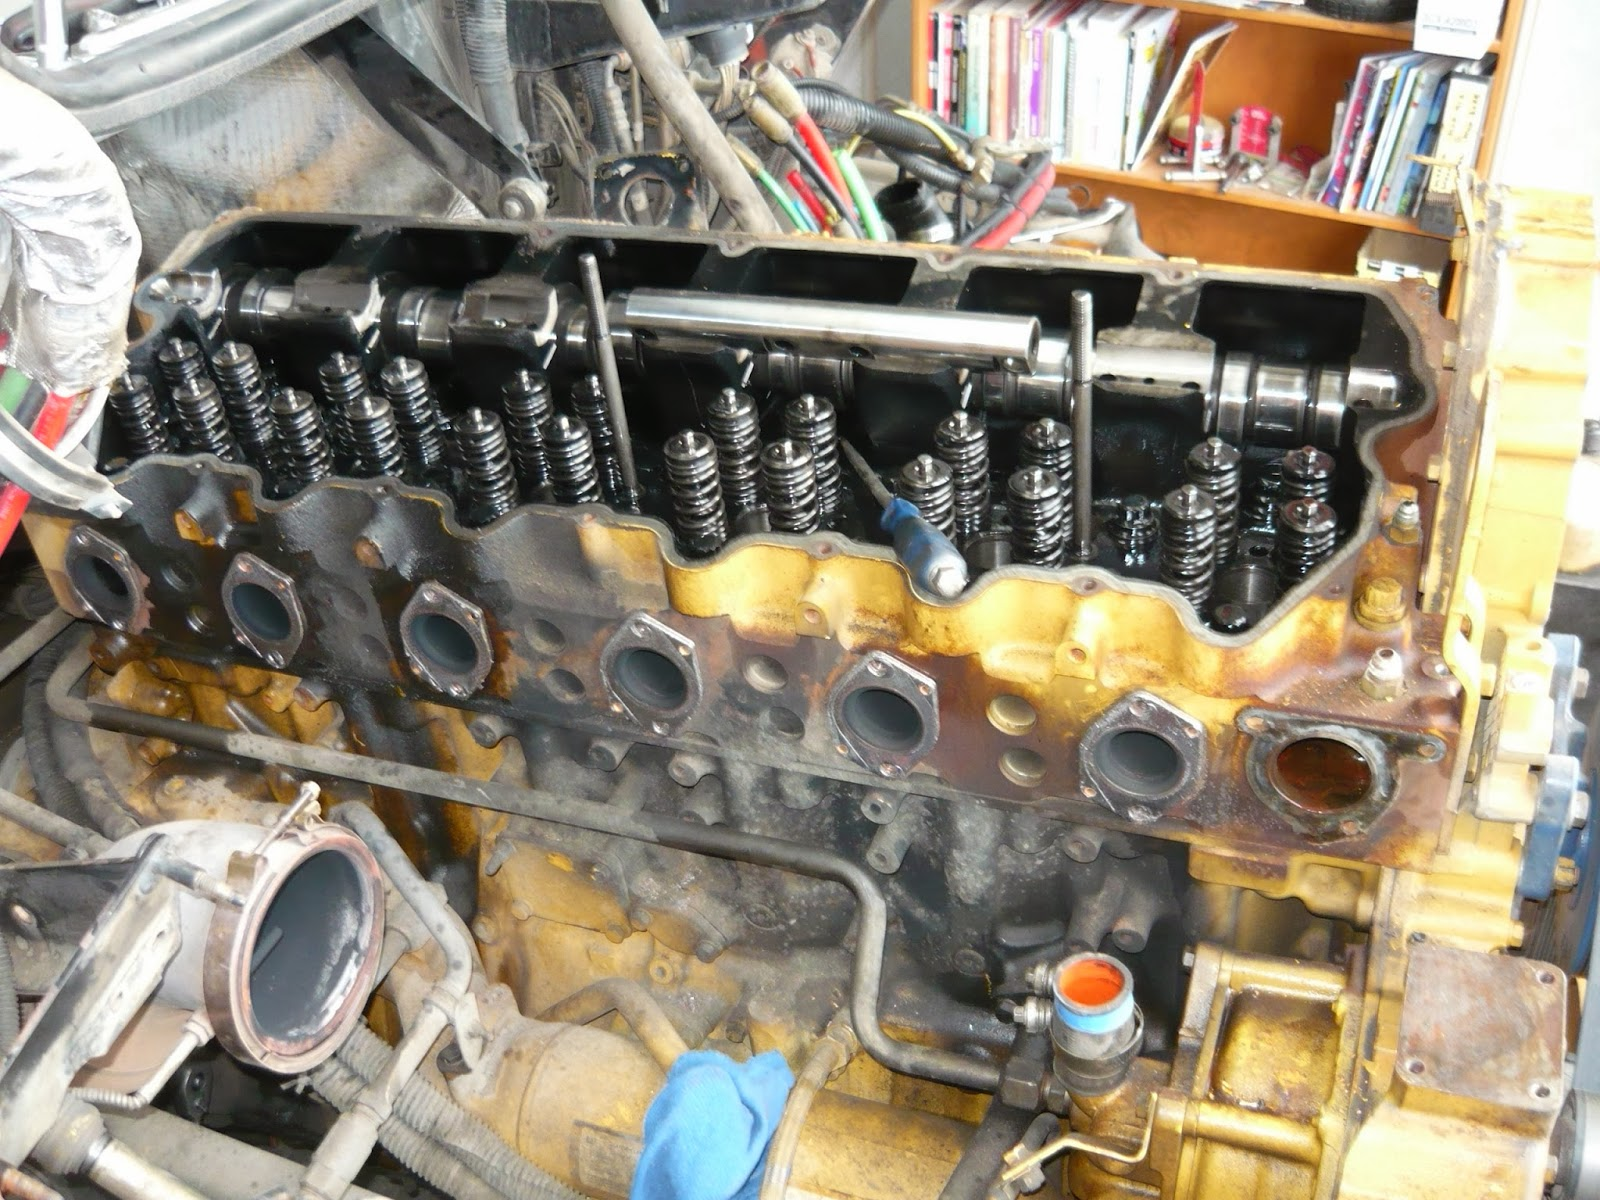 Christie Pacific Case History  Caterpillar C12 Cylinder Head Failure